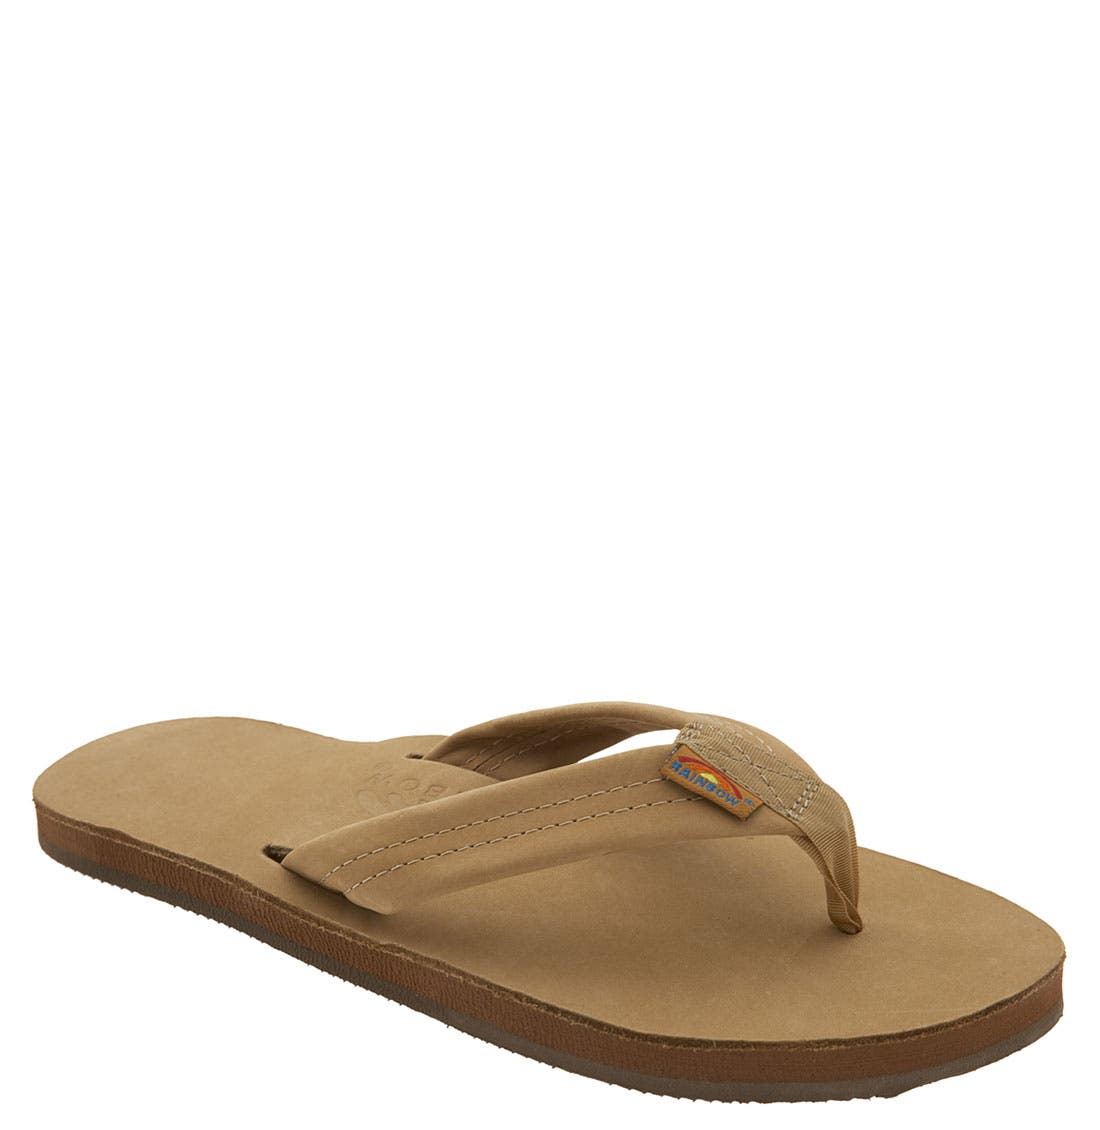 '301Alts' Sandal,                         Main,                         color, Brown